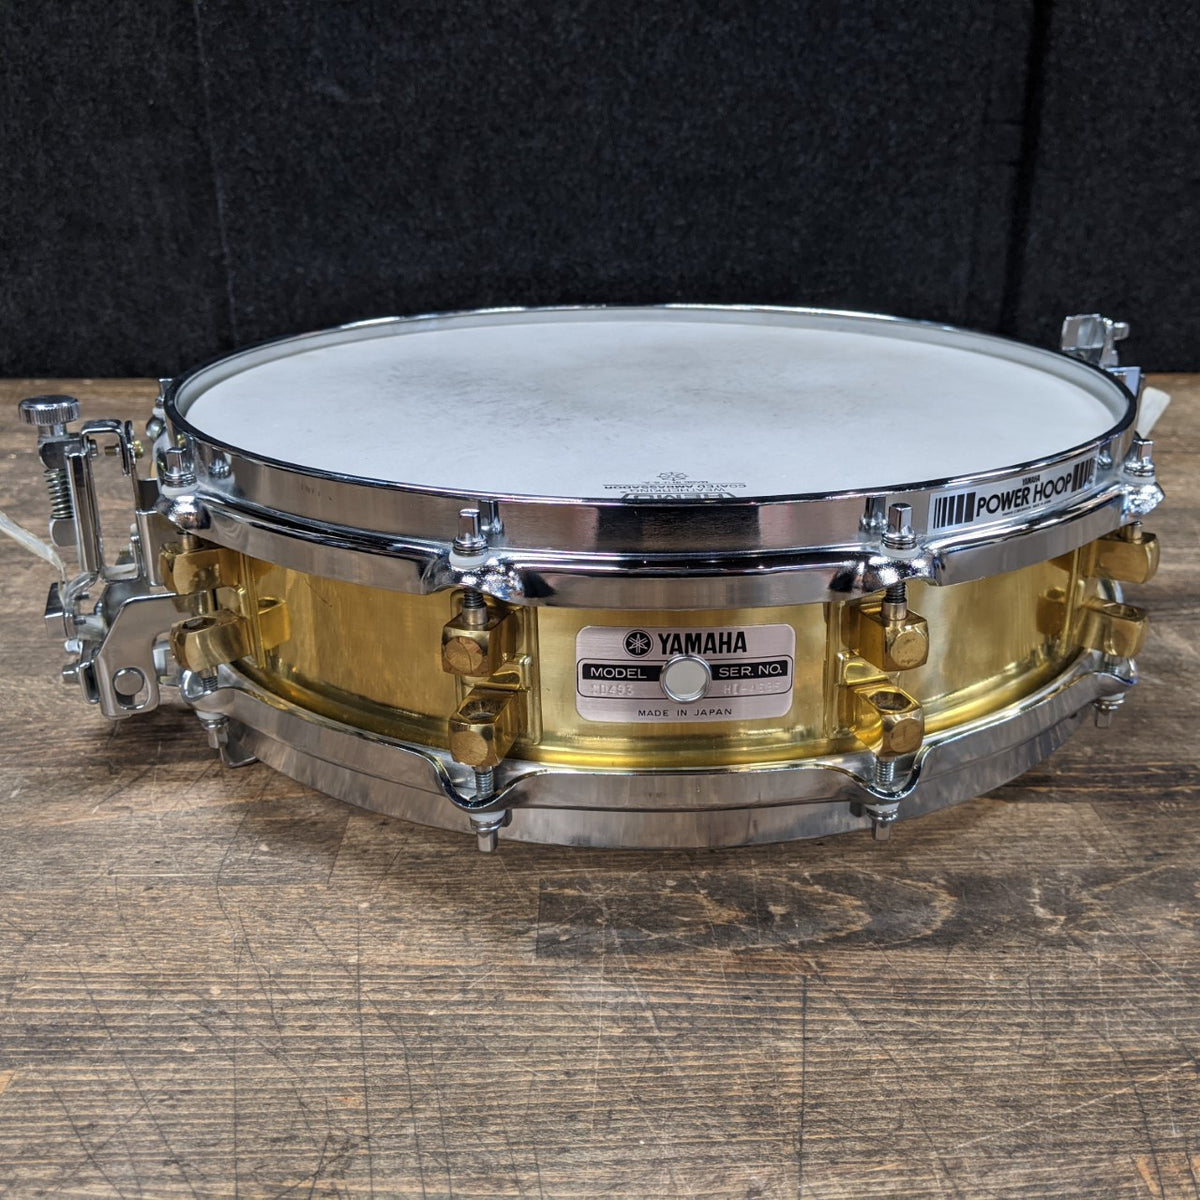 Yamaha SD493 3.5x14 Brass Piccolo Snare Drum - Used